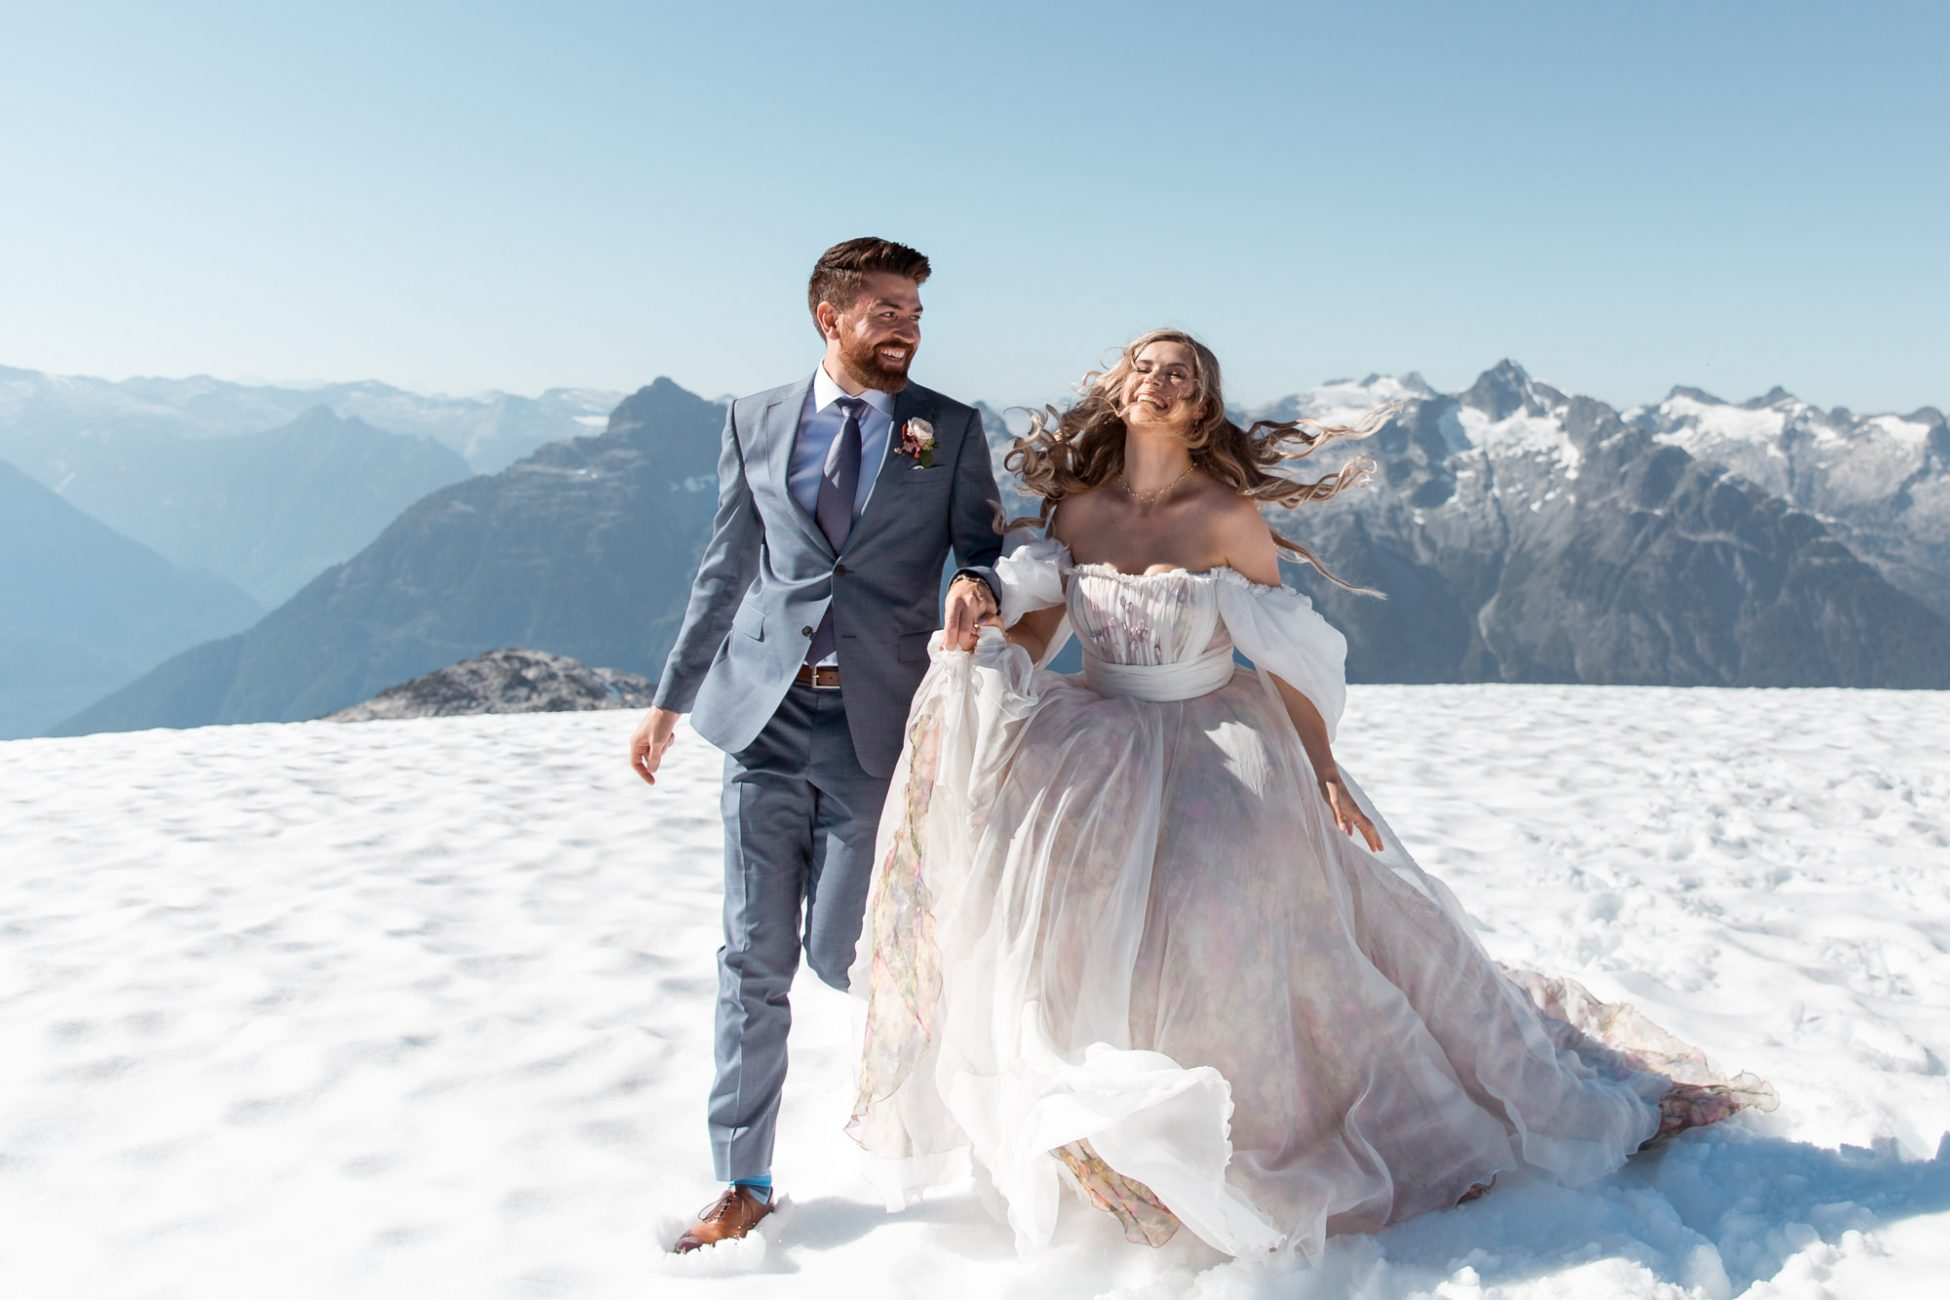 Happy smiling bride and groom running in the snow surrounded by the mountains during their whistler helicopter elopement